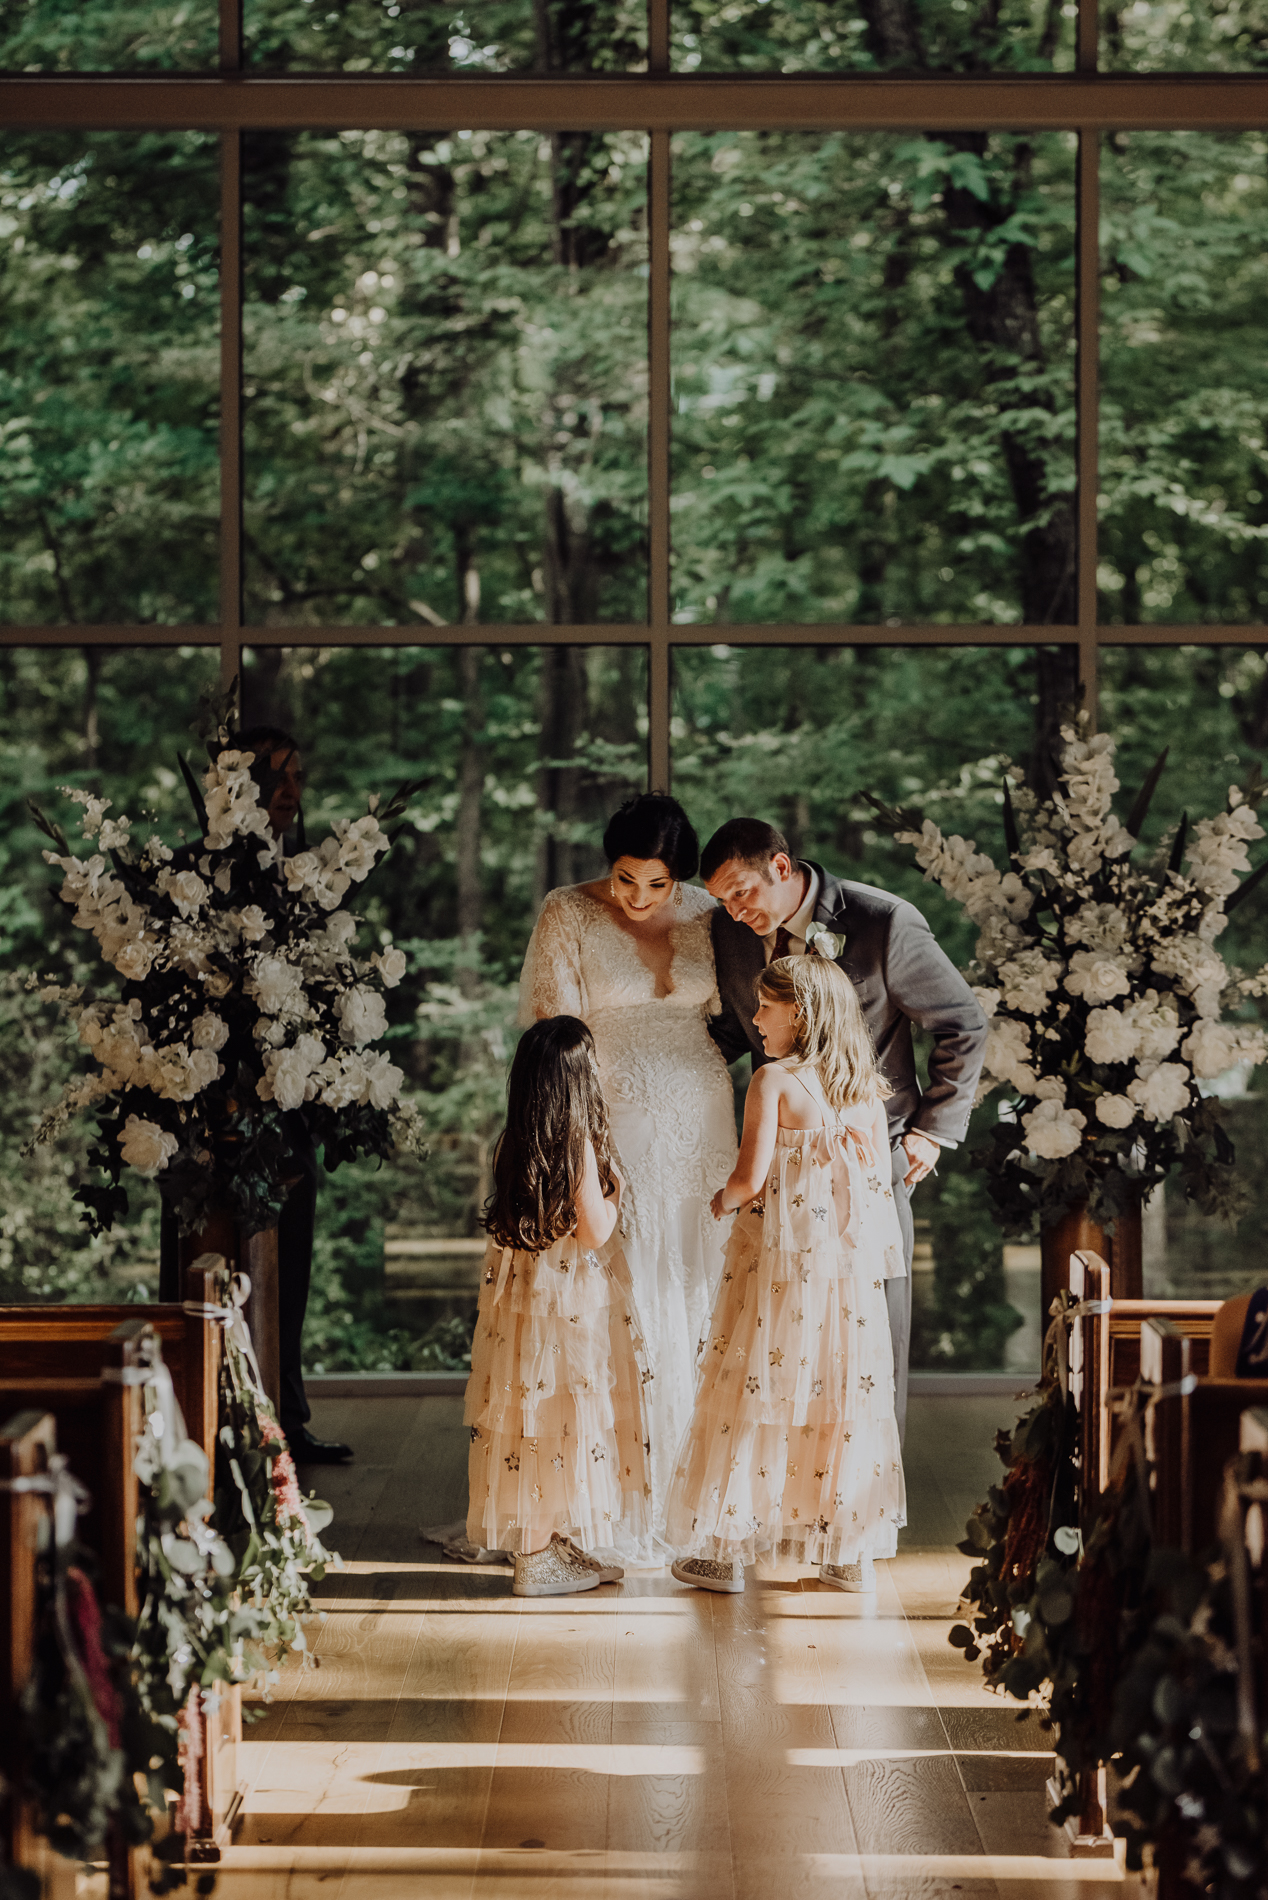 julia and dennis wedding at graceland by wilde company-117.jpg